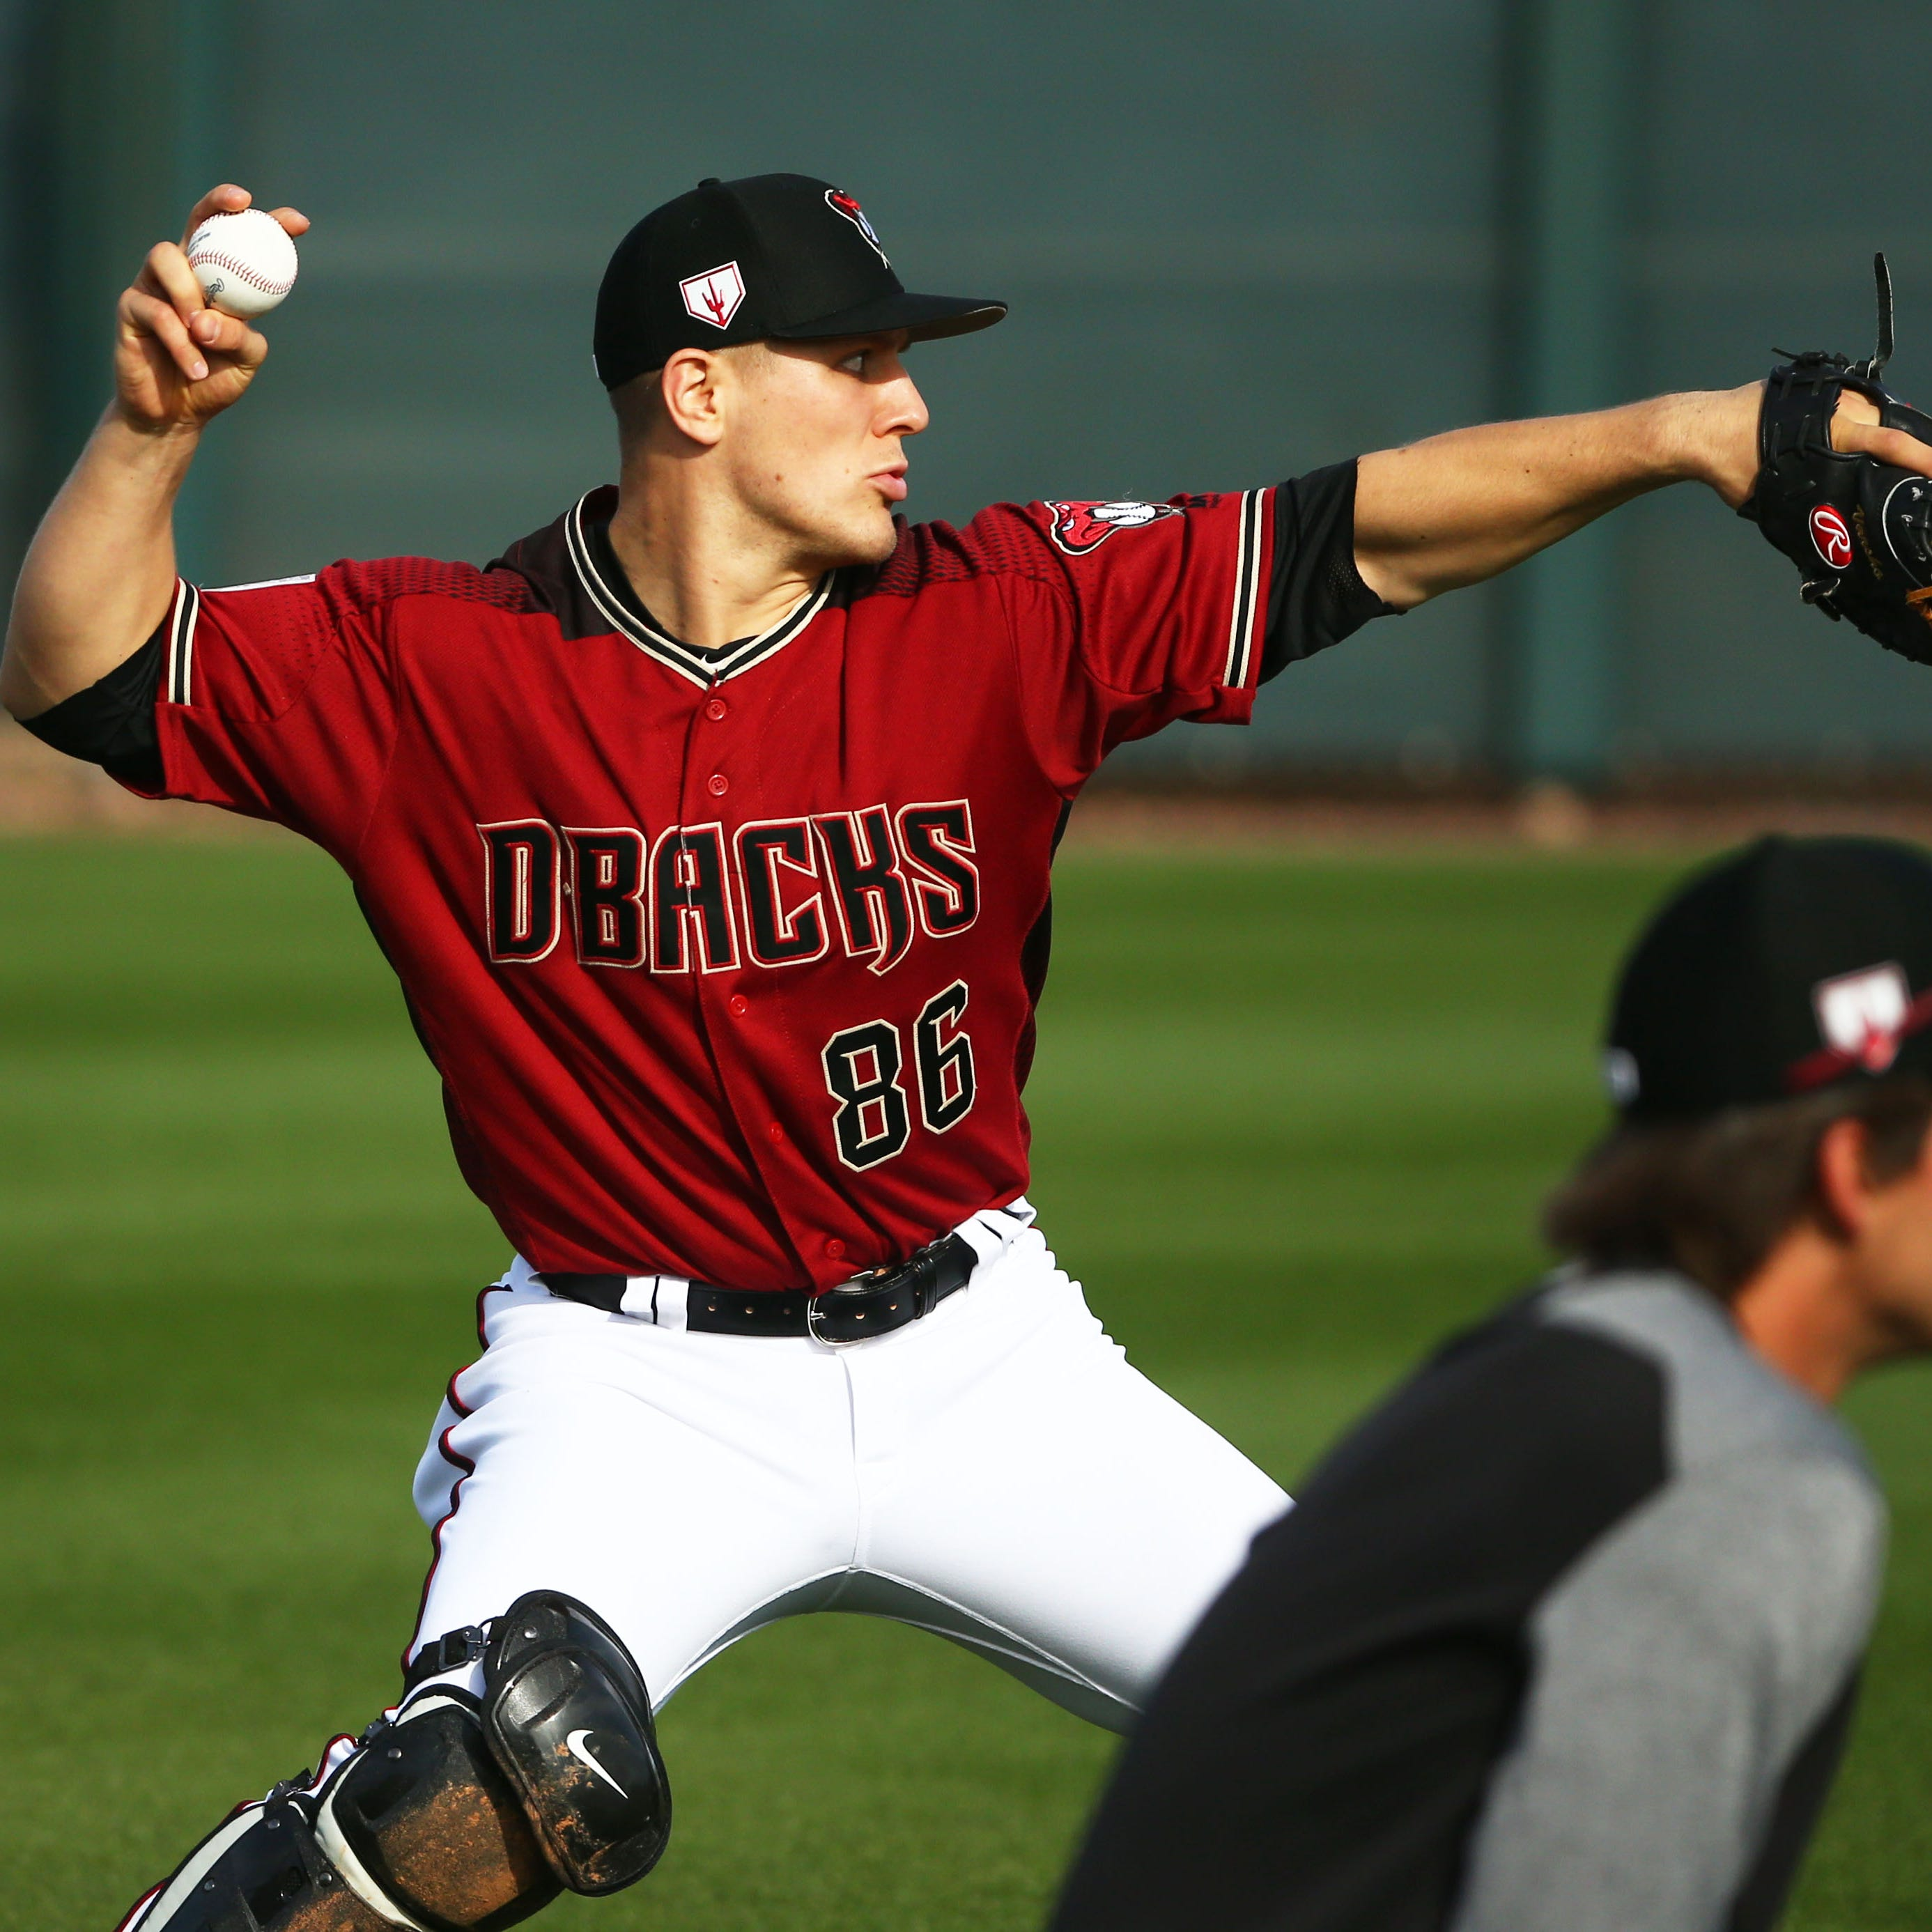 Arizona Diamondbacks prospects create hope for future early in camp